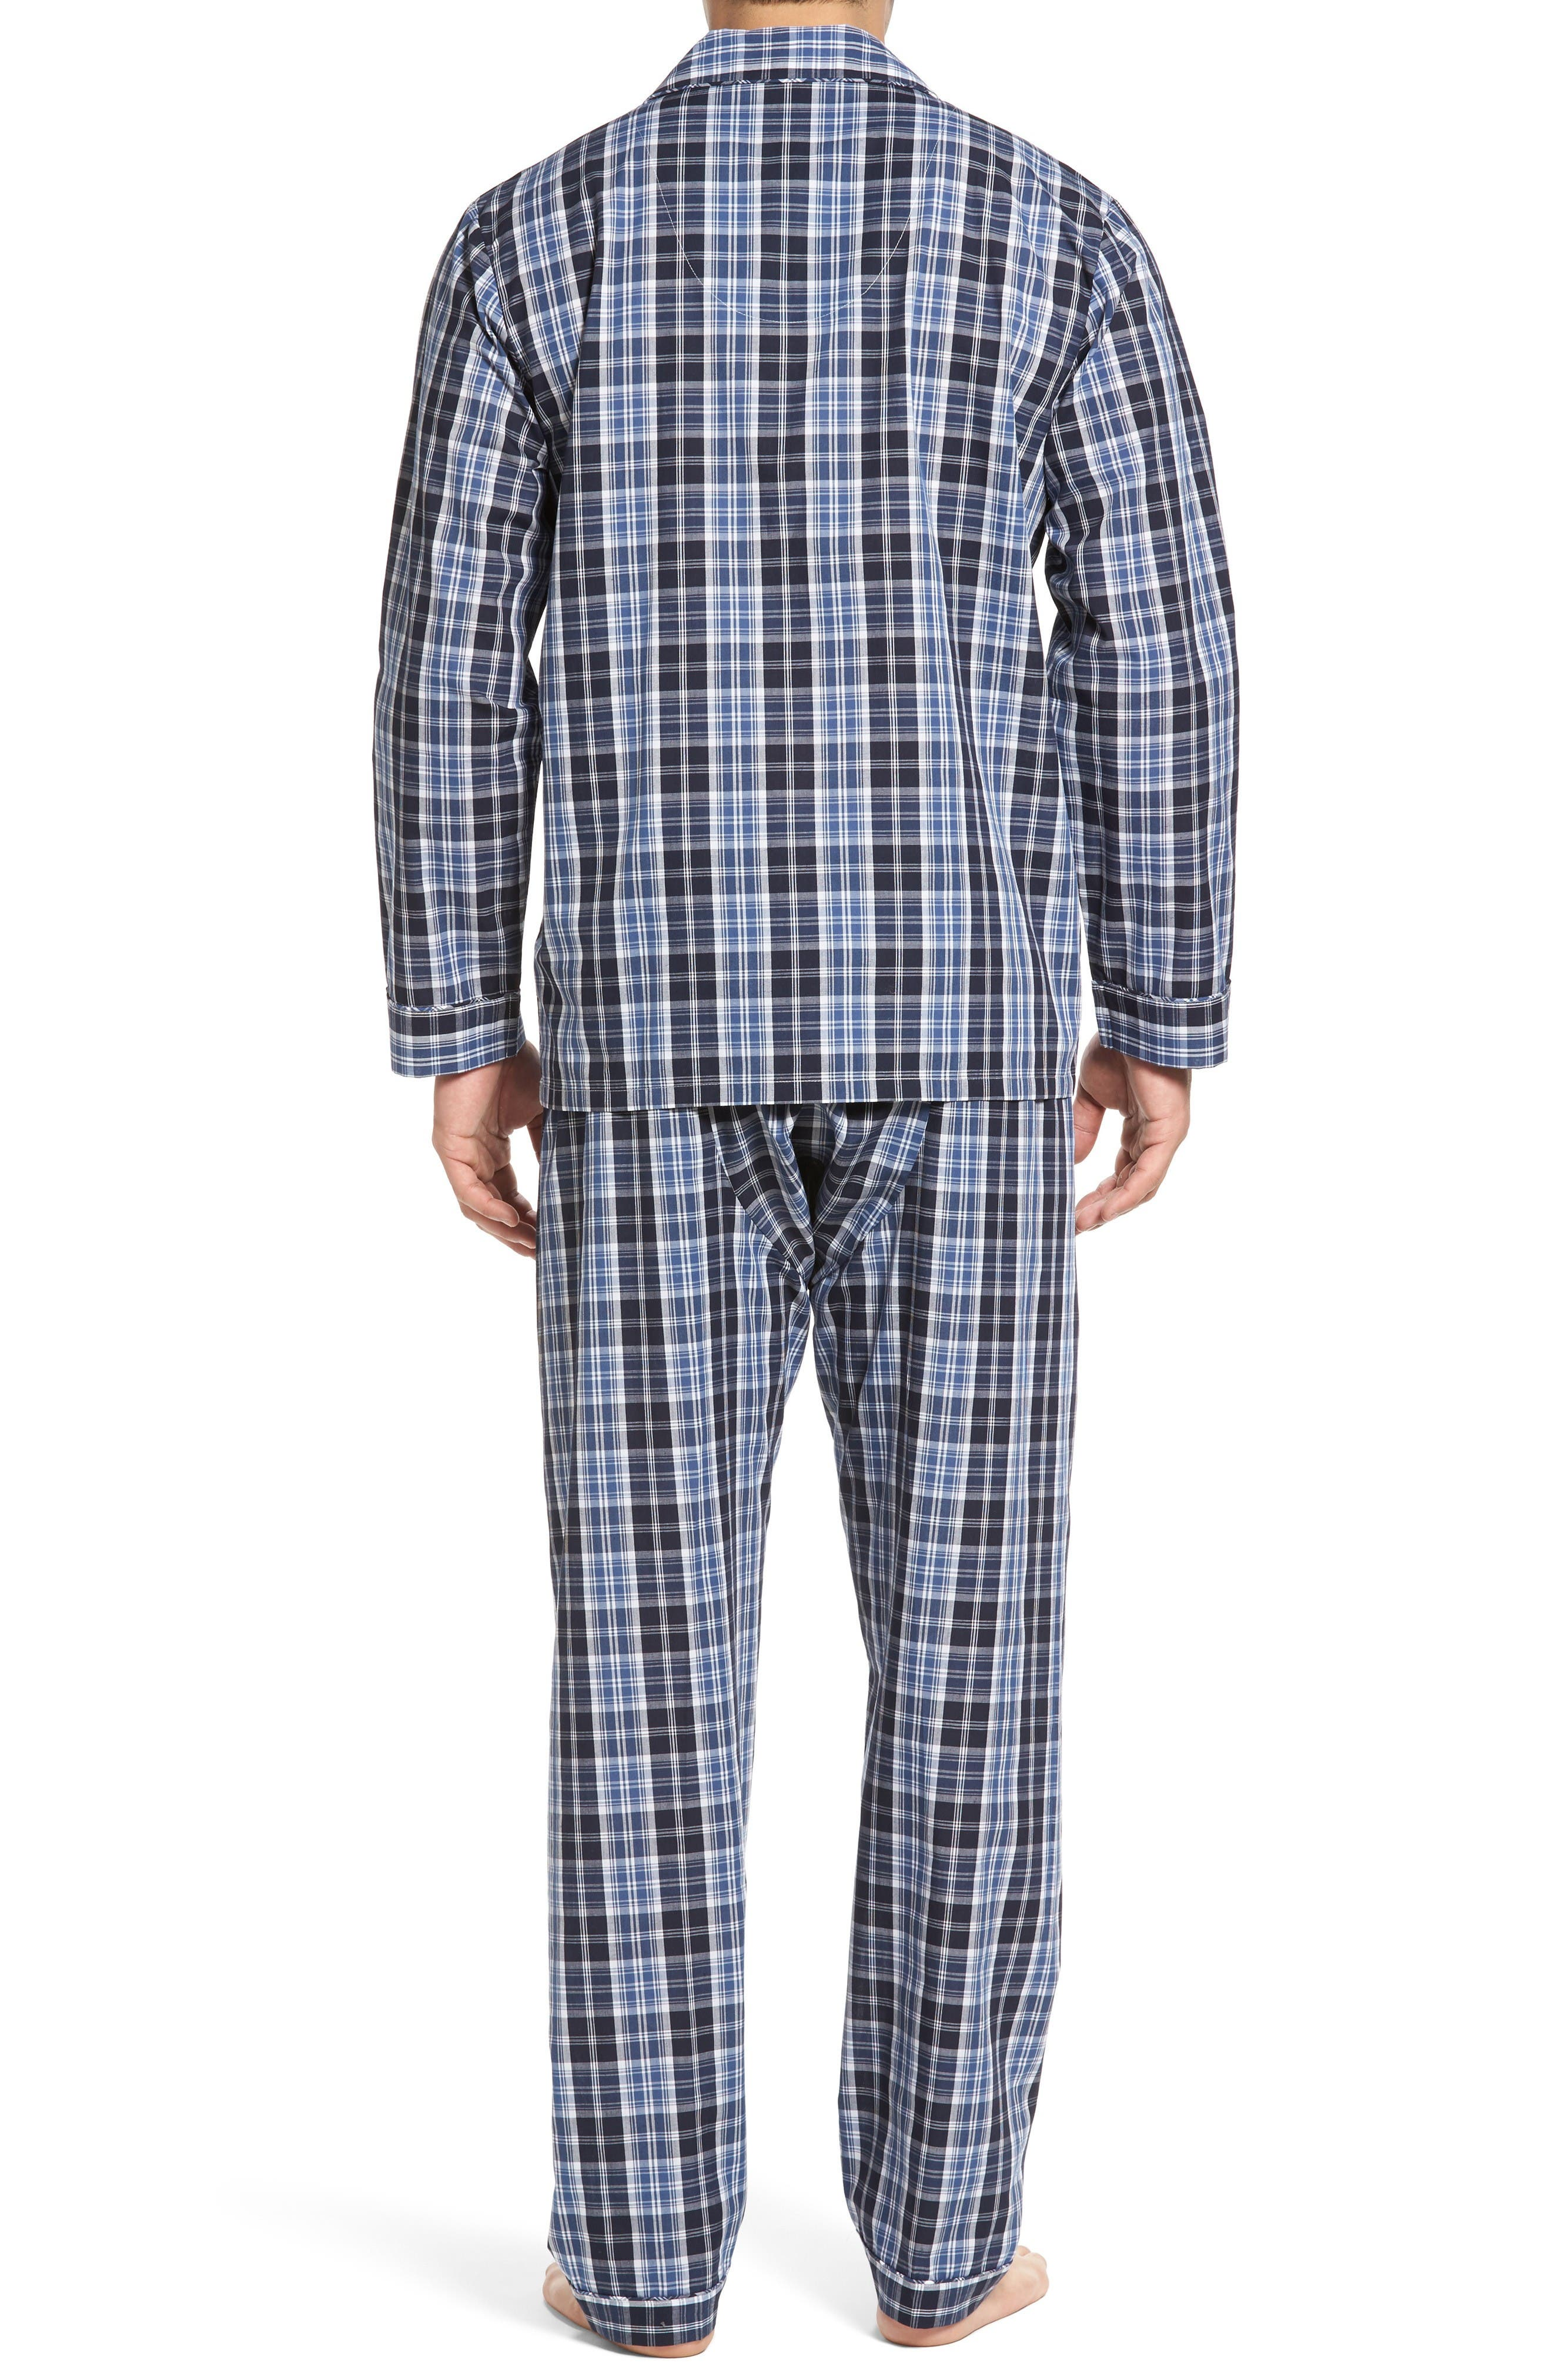 Alternate Image 2  - Majestic International 'Ryden' Cotton Blend Pajamas